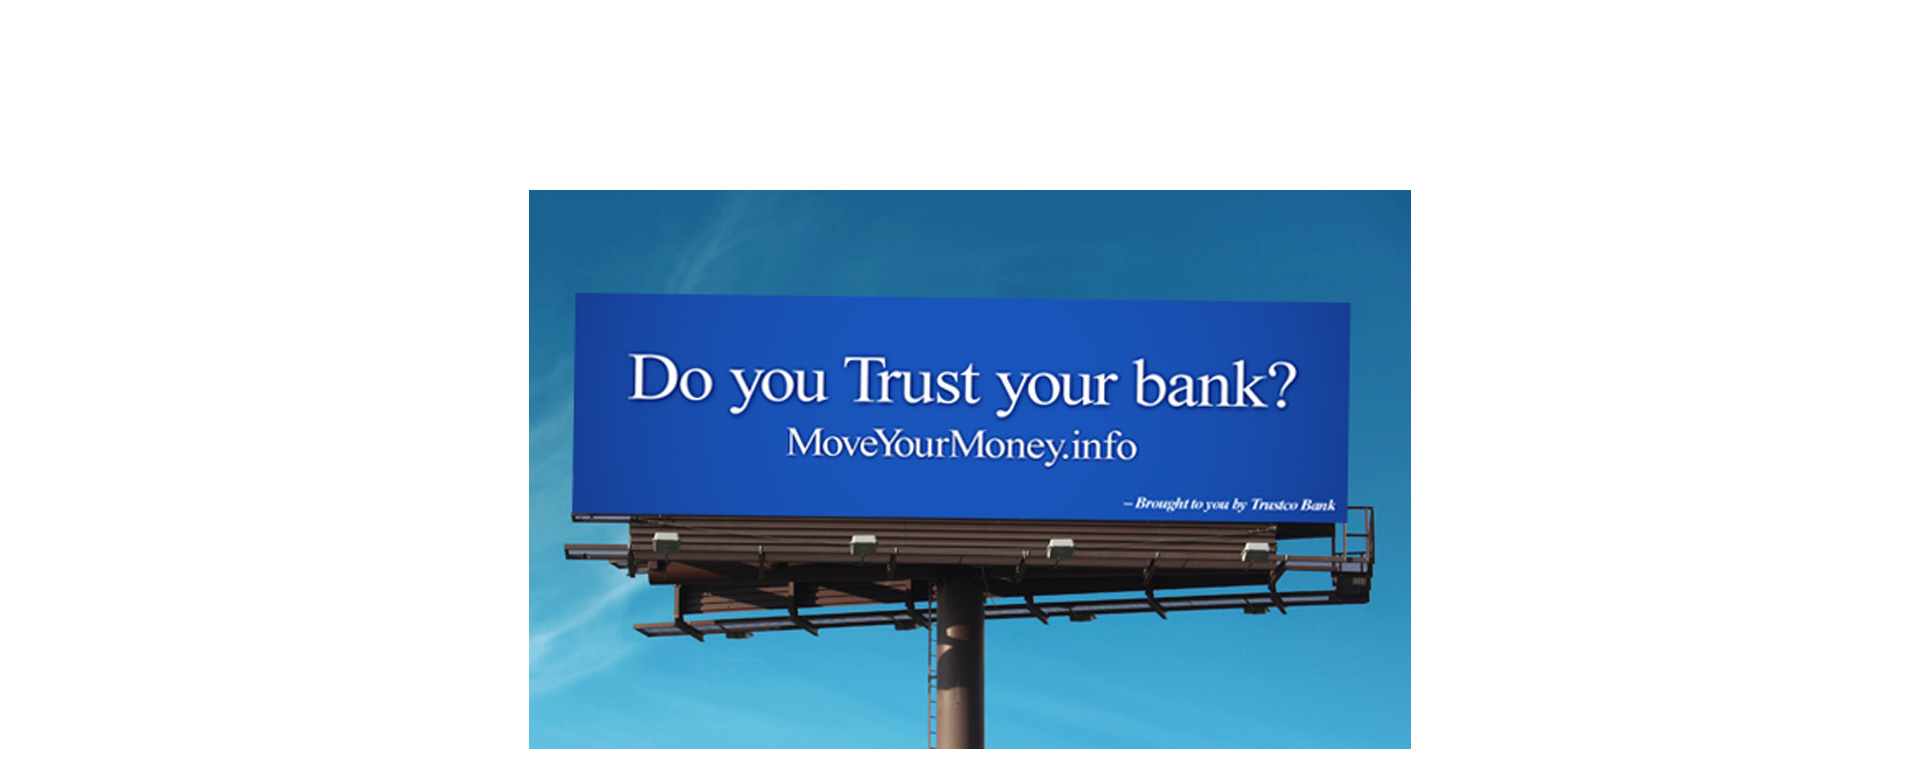 Trust Your Bank Outdoor